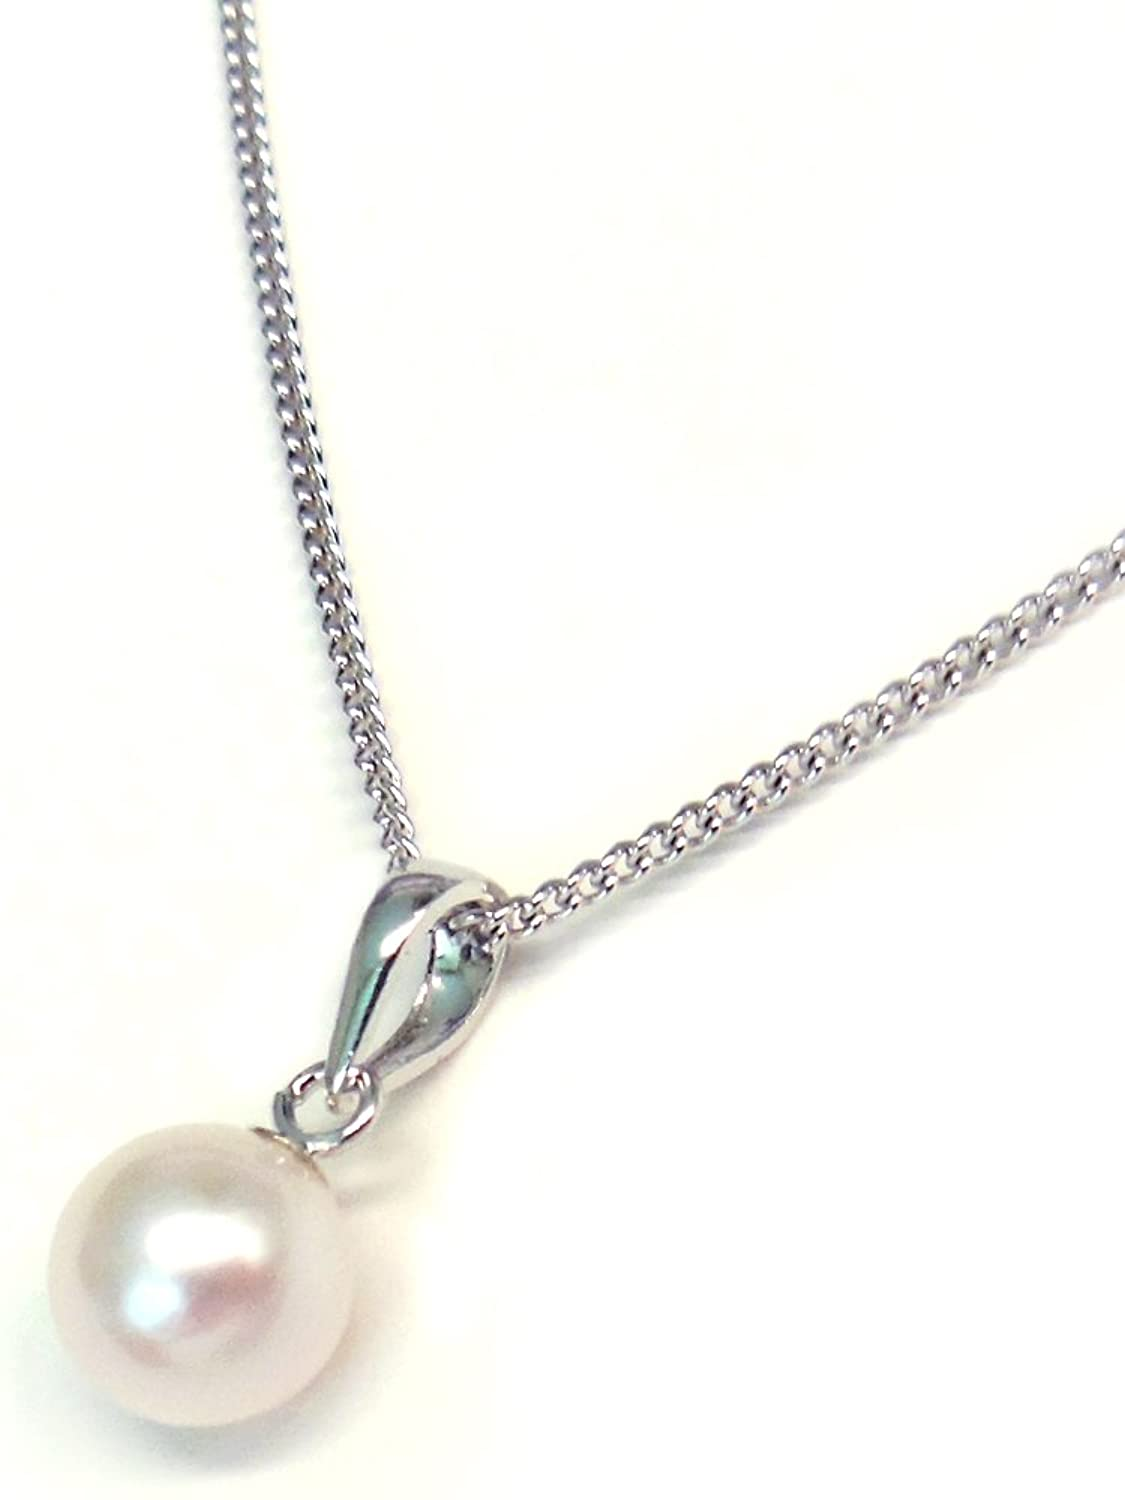 Made In Japan Akoya Pearl Pendant Necklace Silver Sv925